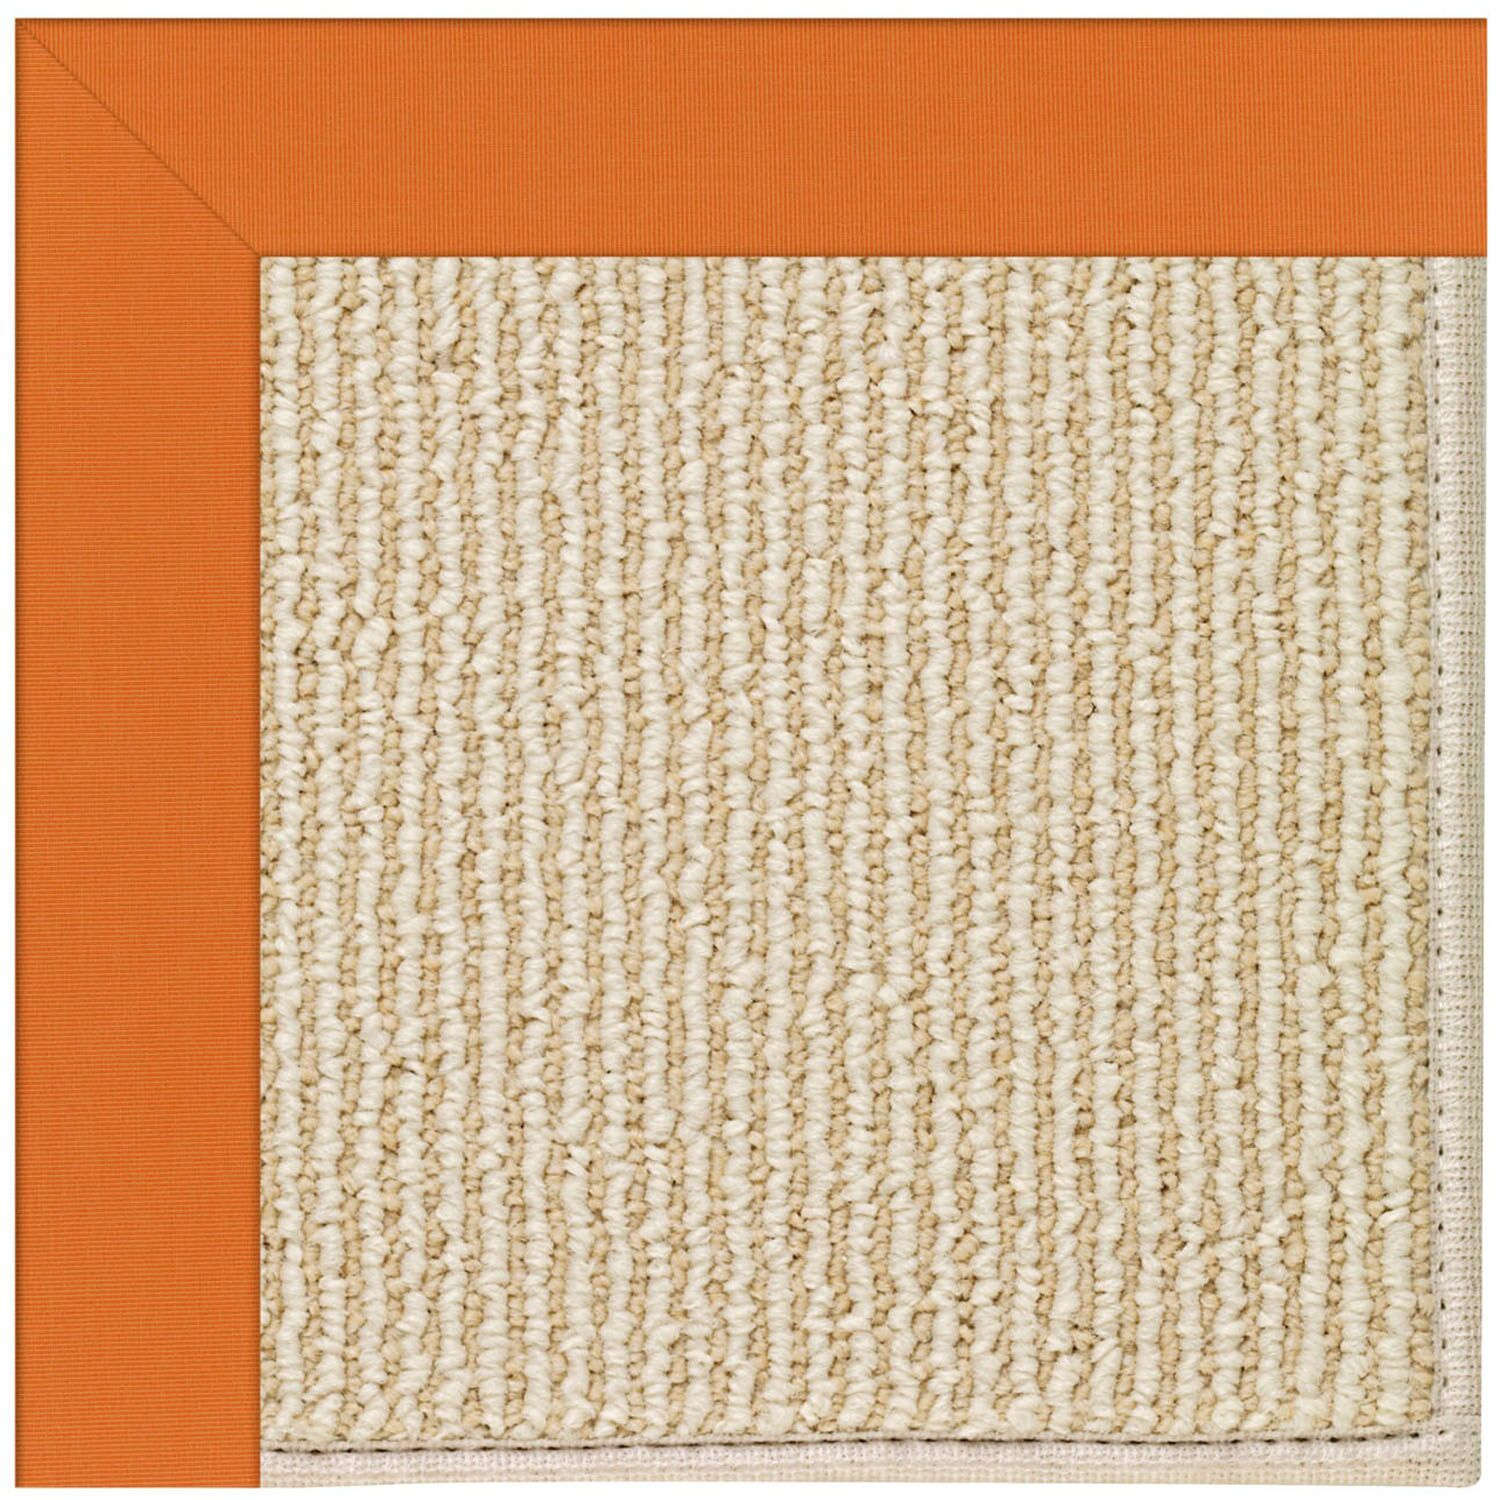 Lisle Machine Tufted Clementine Indoor/Outdoor Area Rug Rug Size: Rectangle 4' x 6'